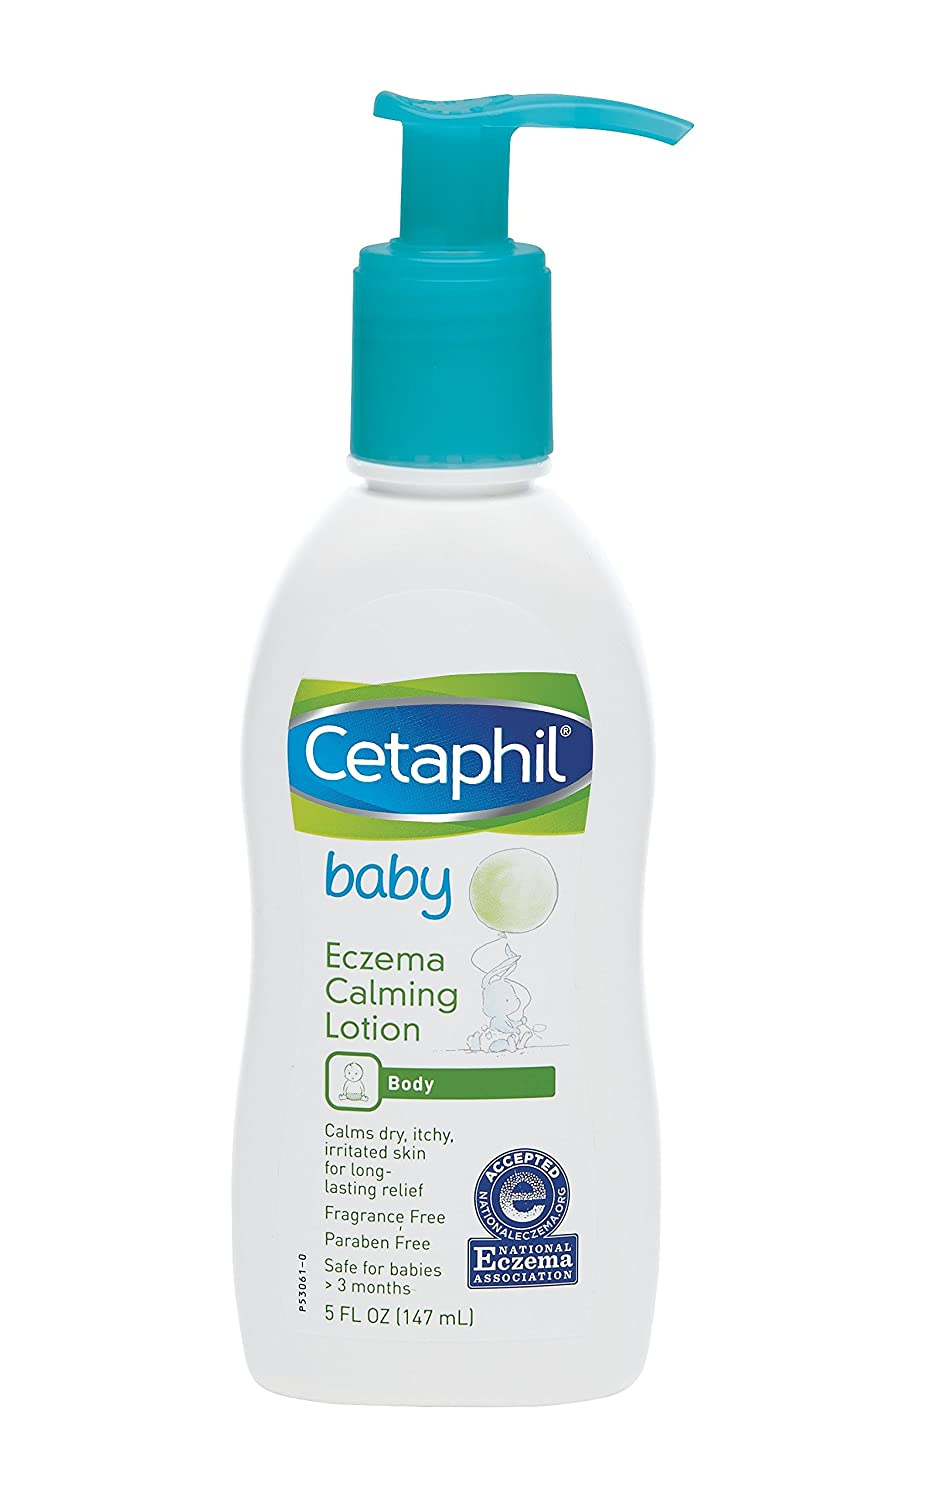 Cetaphil Baby Eczema Calming Lotion - Lotion for toddler Eczema